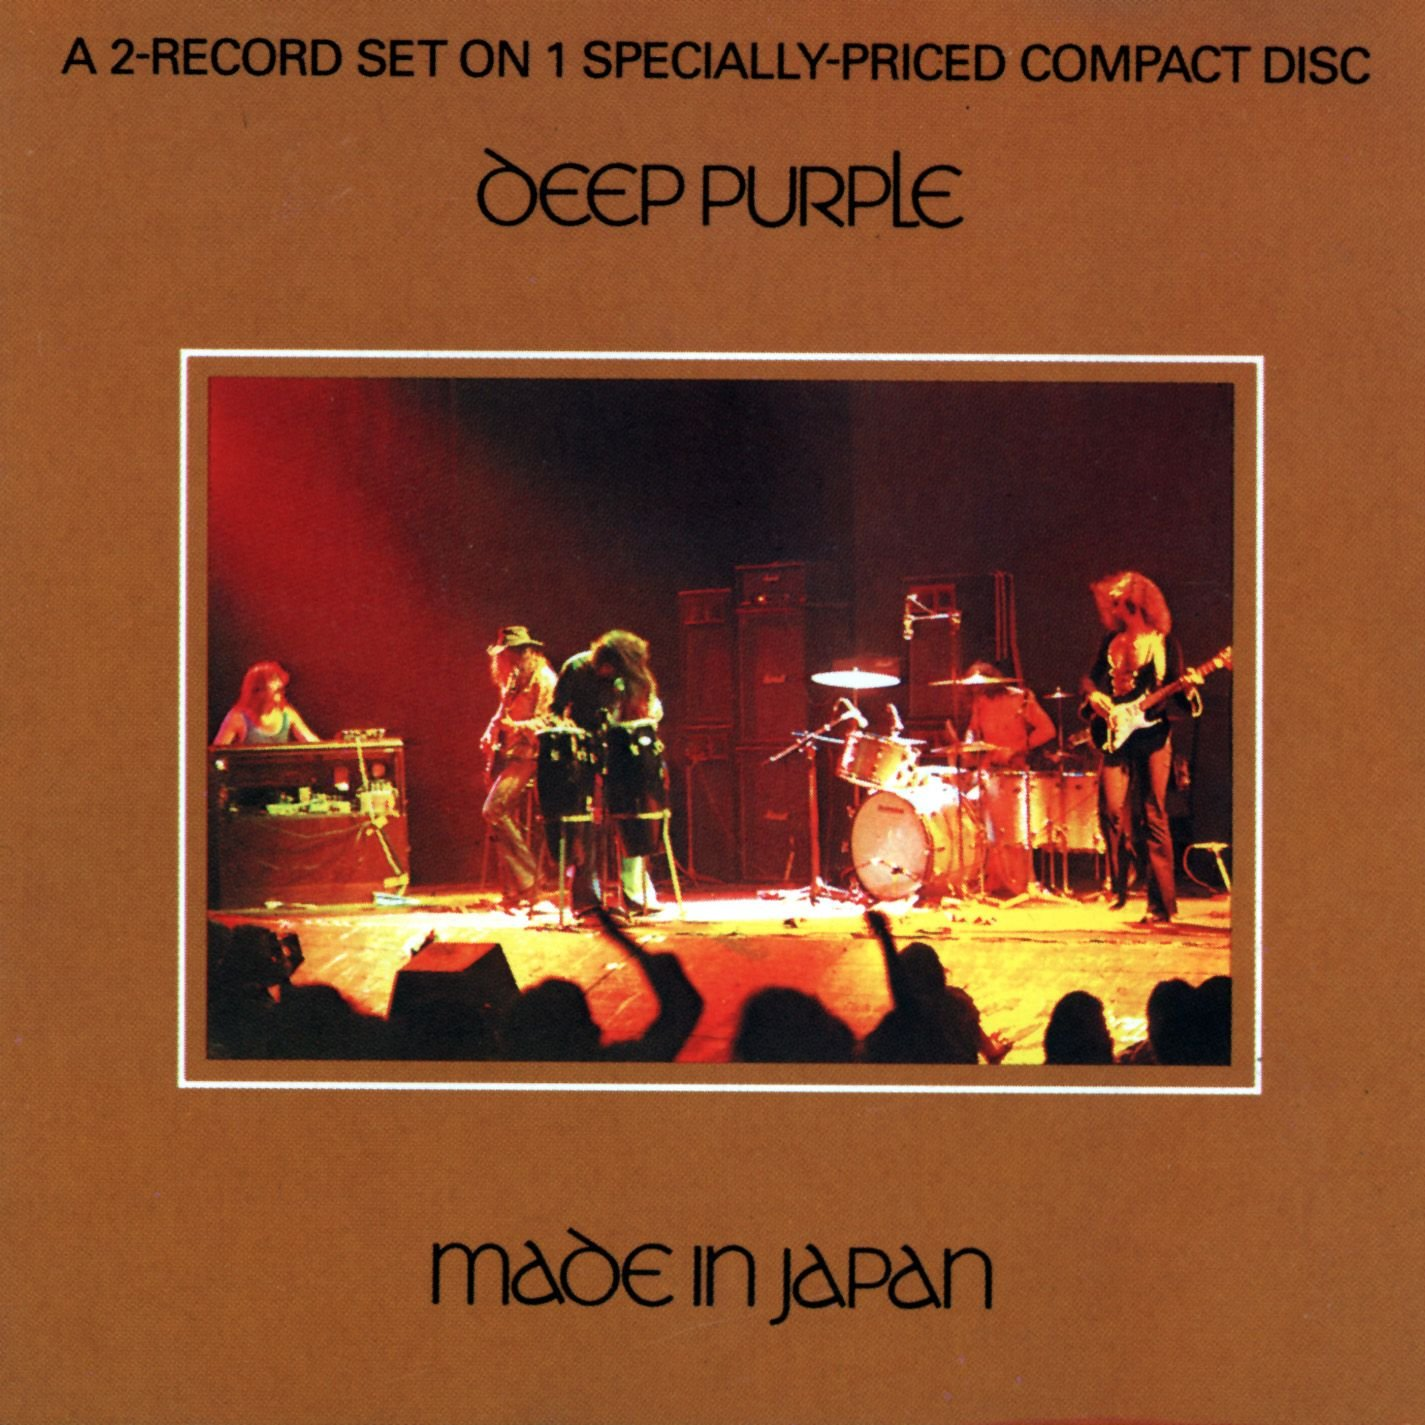 deep purple made in japan mp3 free download